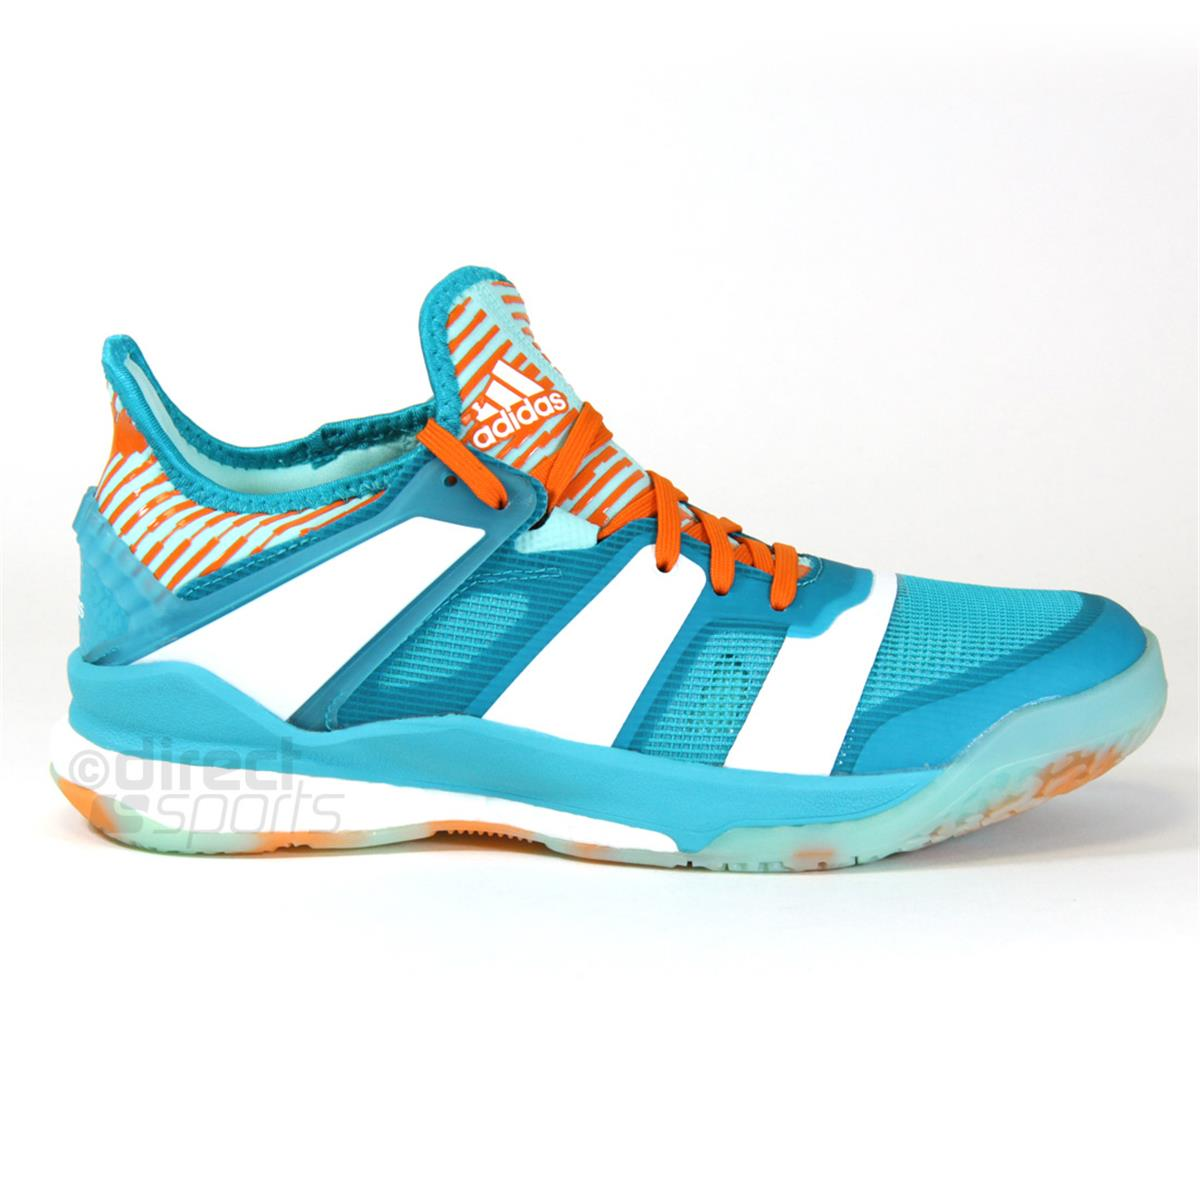 adidas stabil x court shoes aqua white by directbadminton